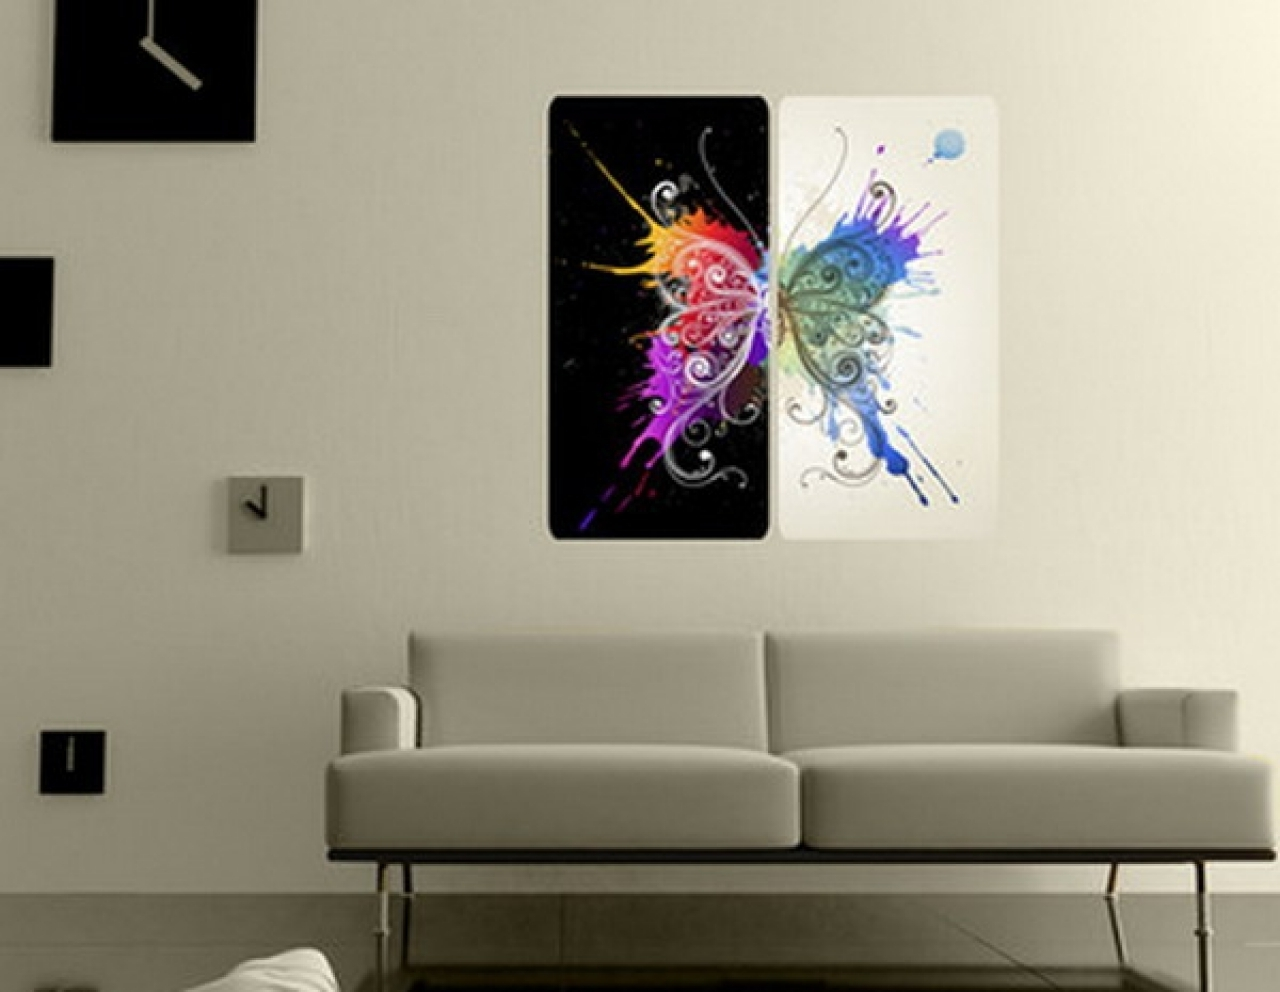 Contemporary Wall Art Inside Most Up To Date Contemporary Wall Sculptures Ideas — All Contemporary Design (View 6 of 15)